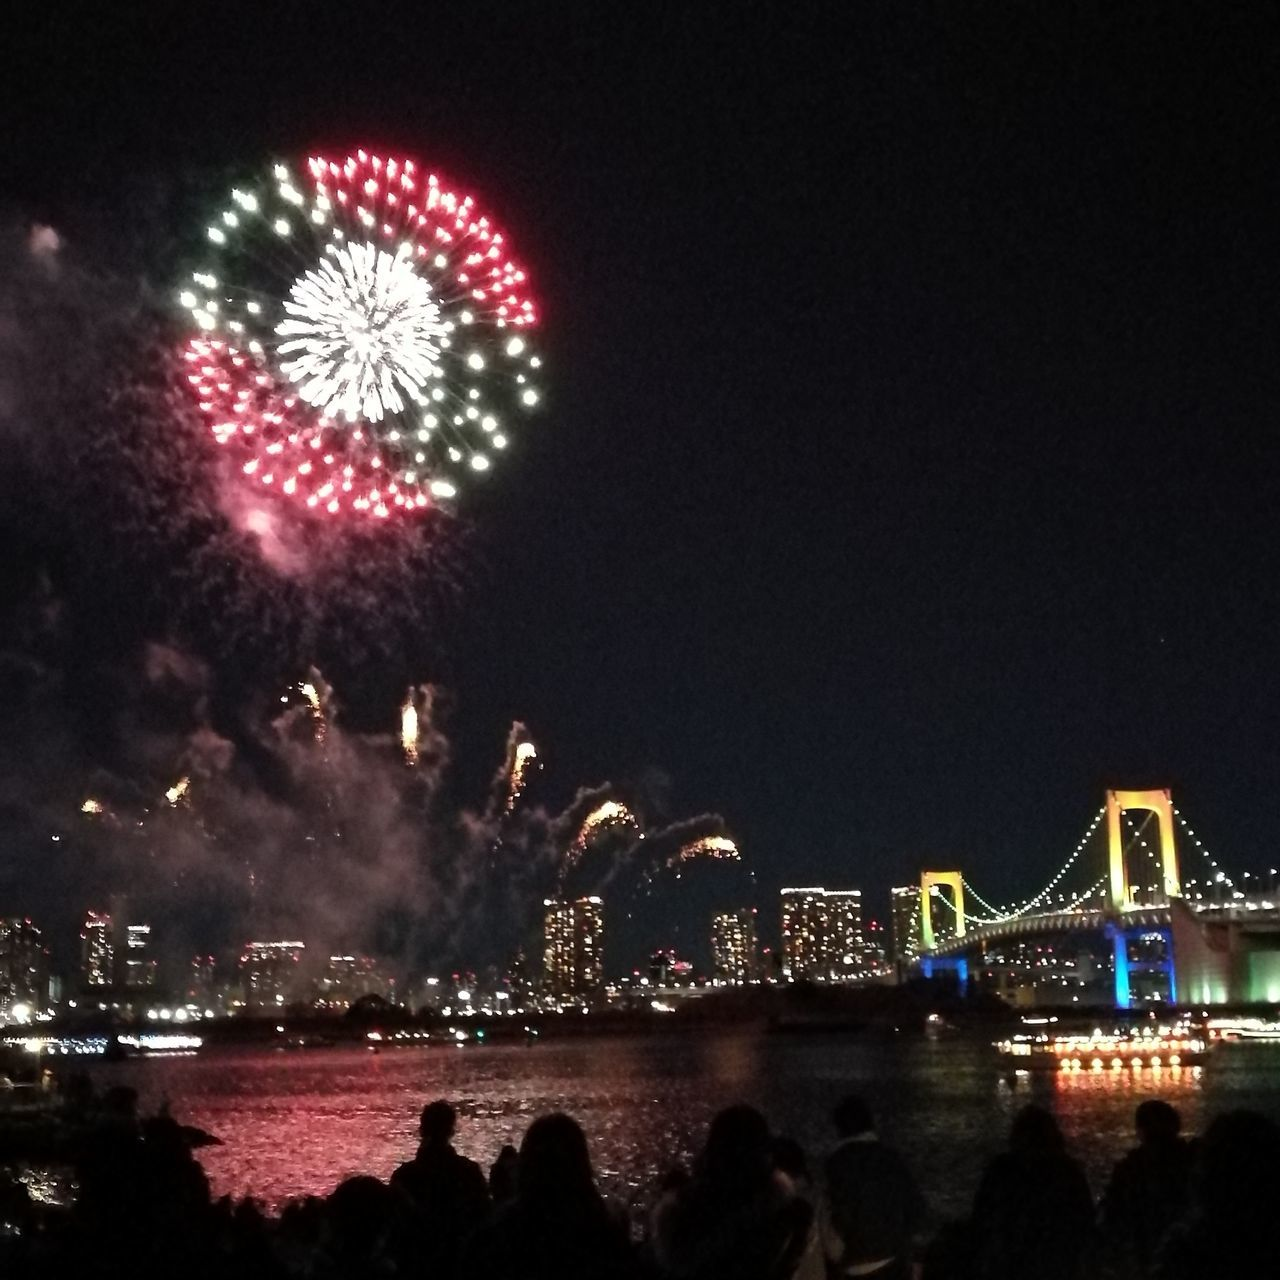 Christmastime Firework Display Firework Outdoors Firework - Man Made Object Event Celebration Night Large Group Of People Sky Illuminated Japan Scenery Japan Japan Photos Night Lights Beach Sea